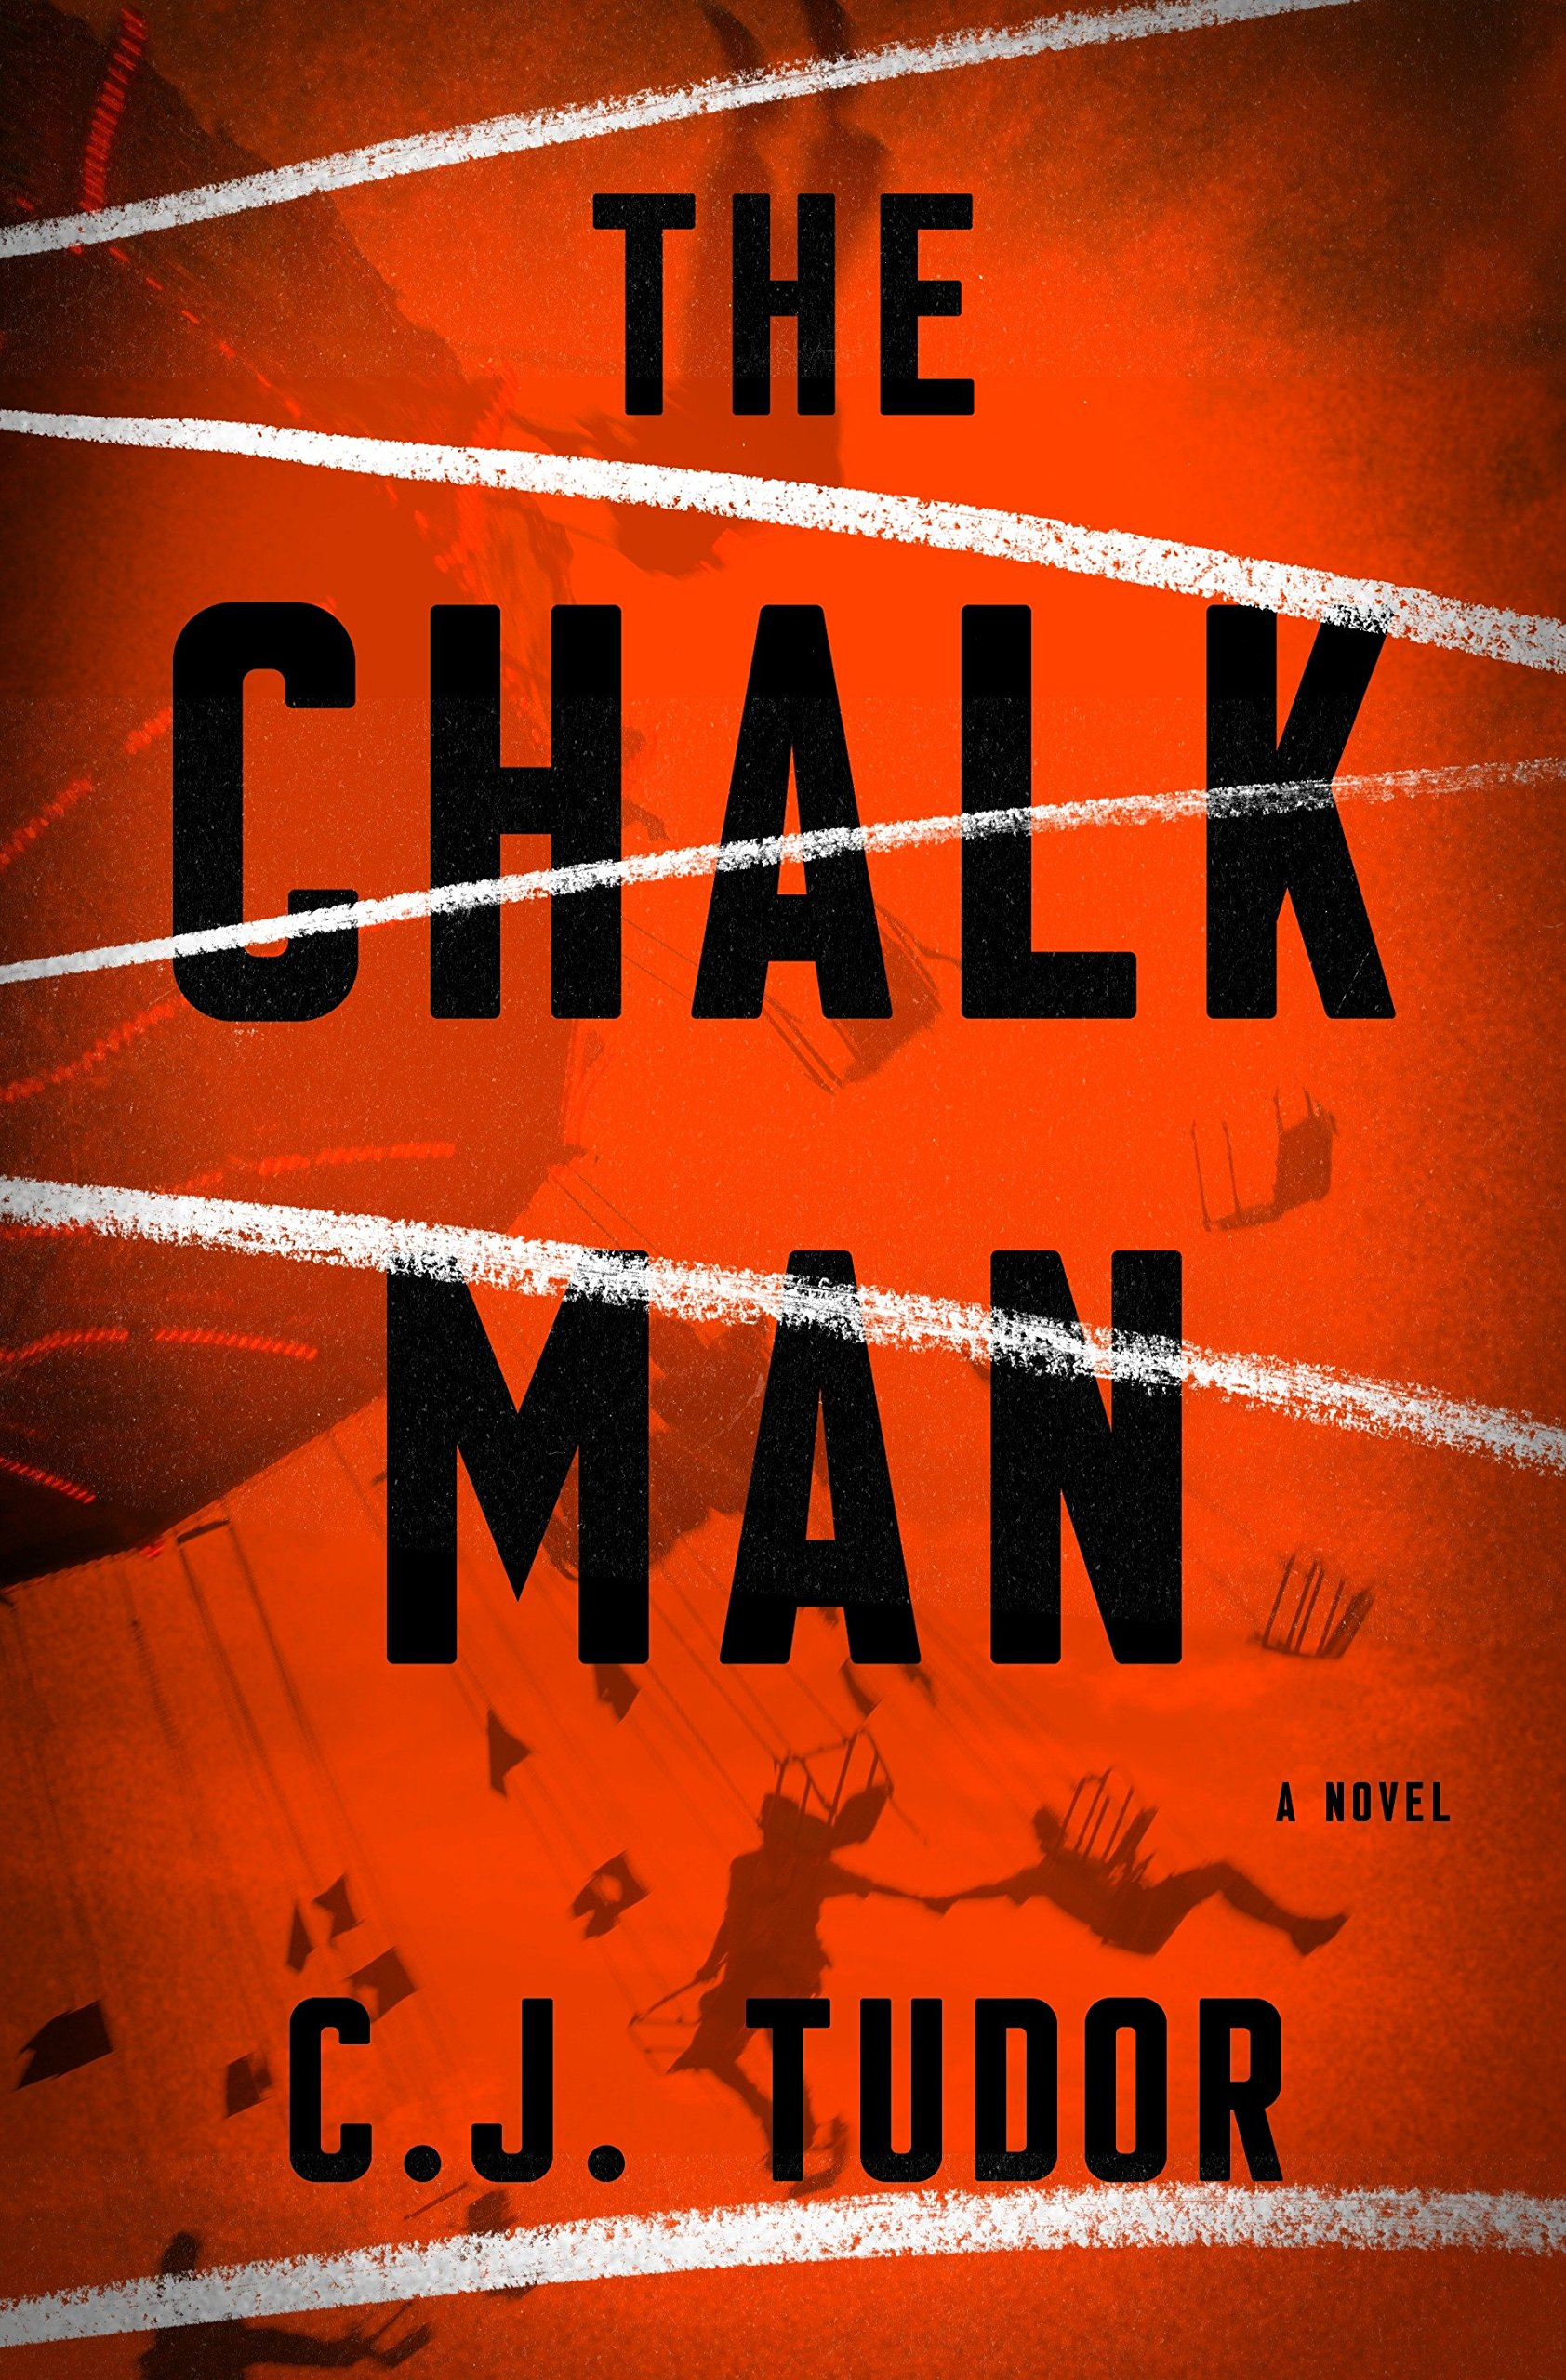 Image result for the chalk man book cover